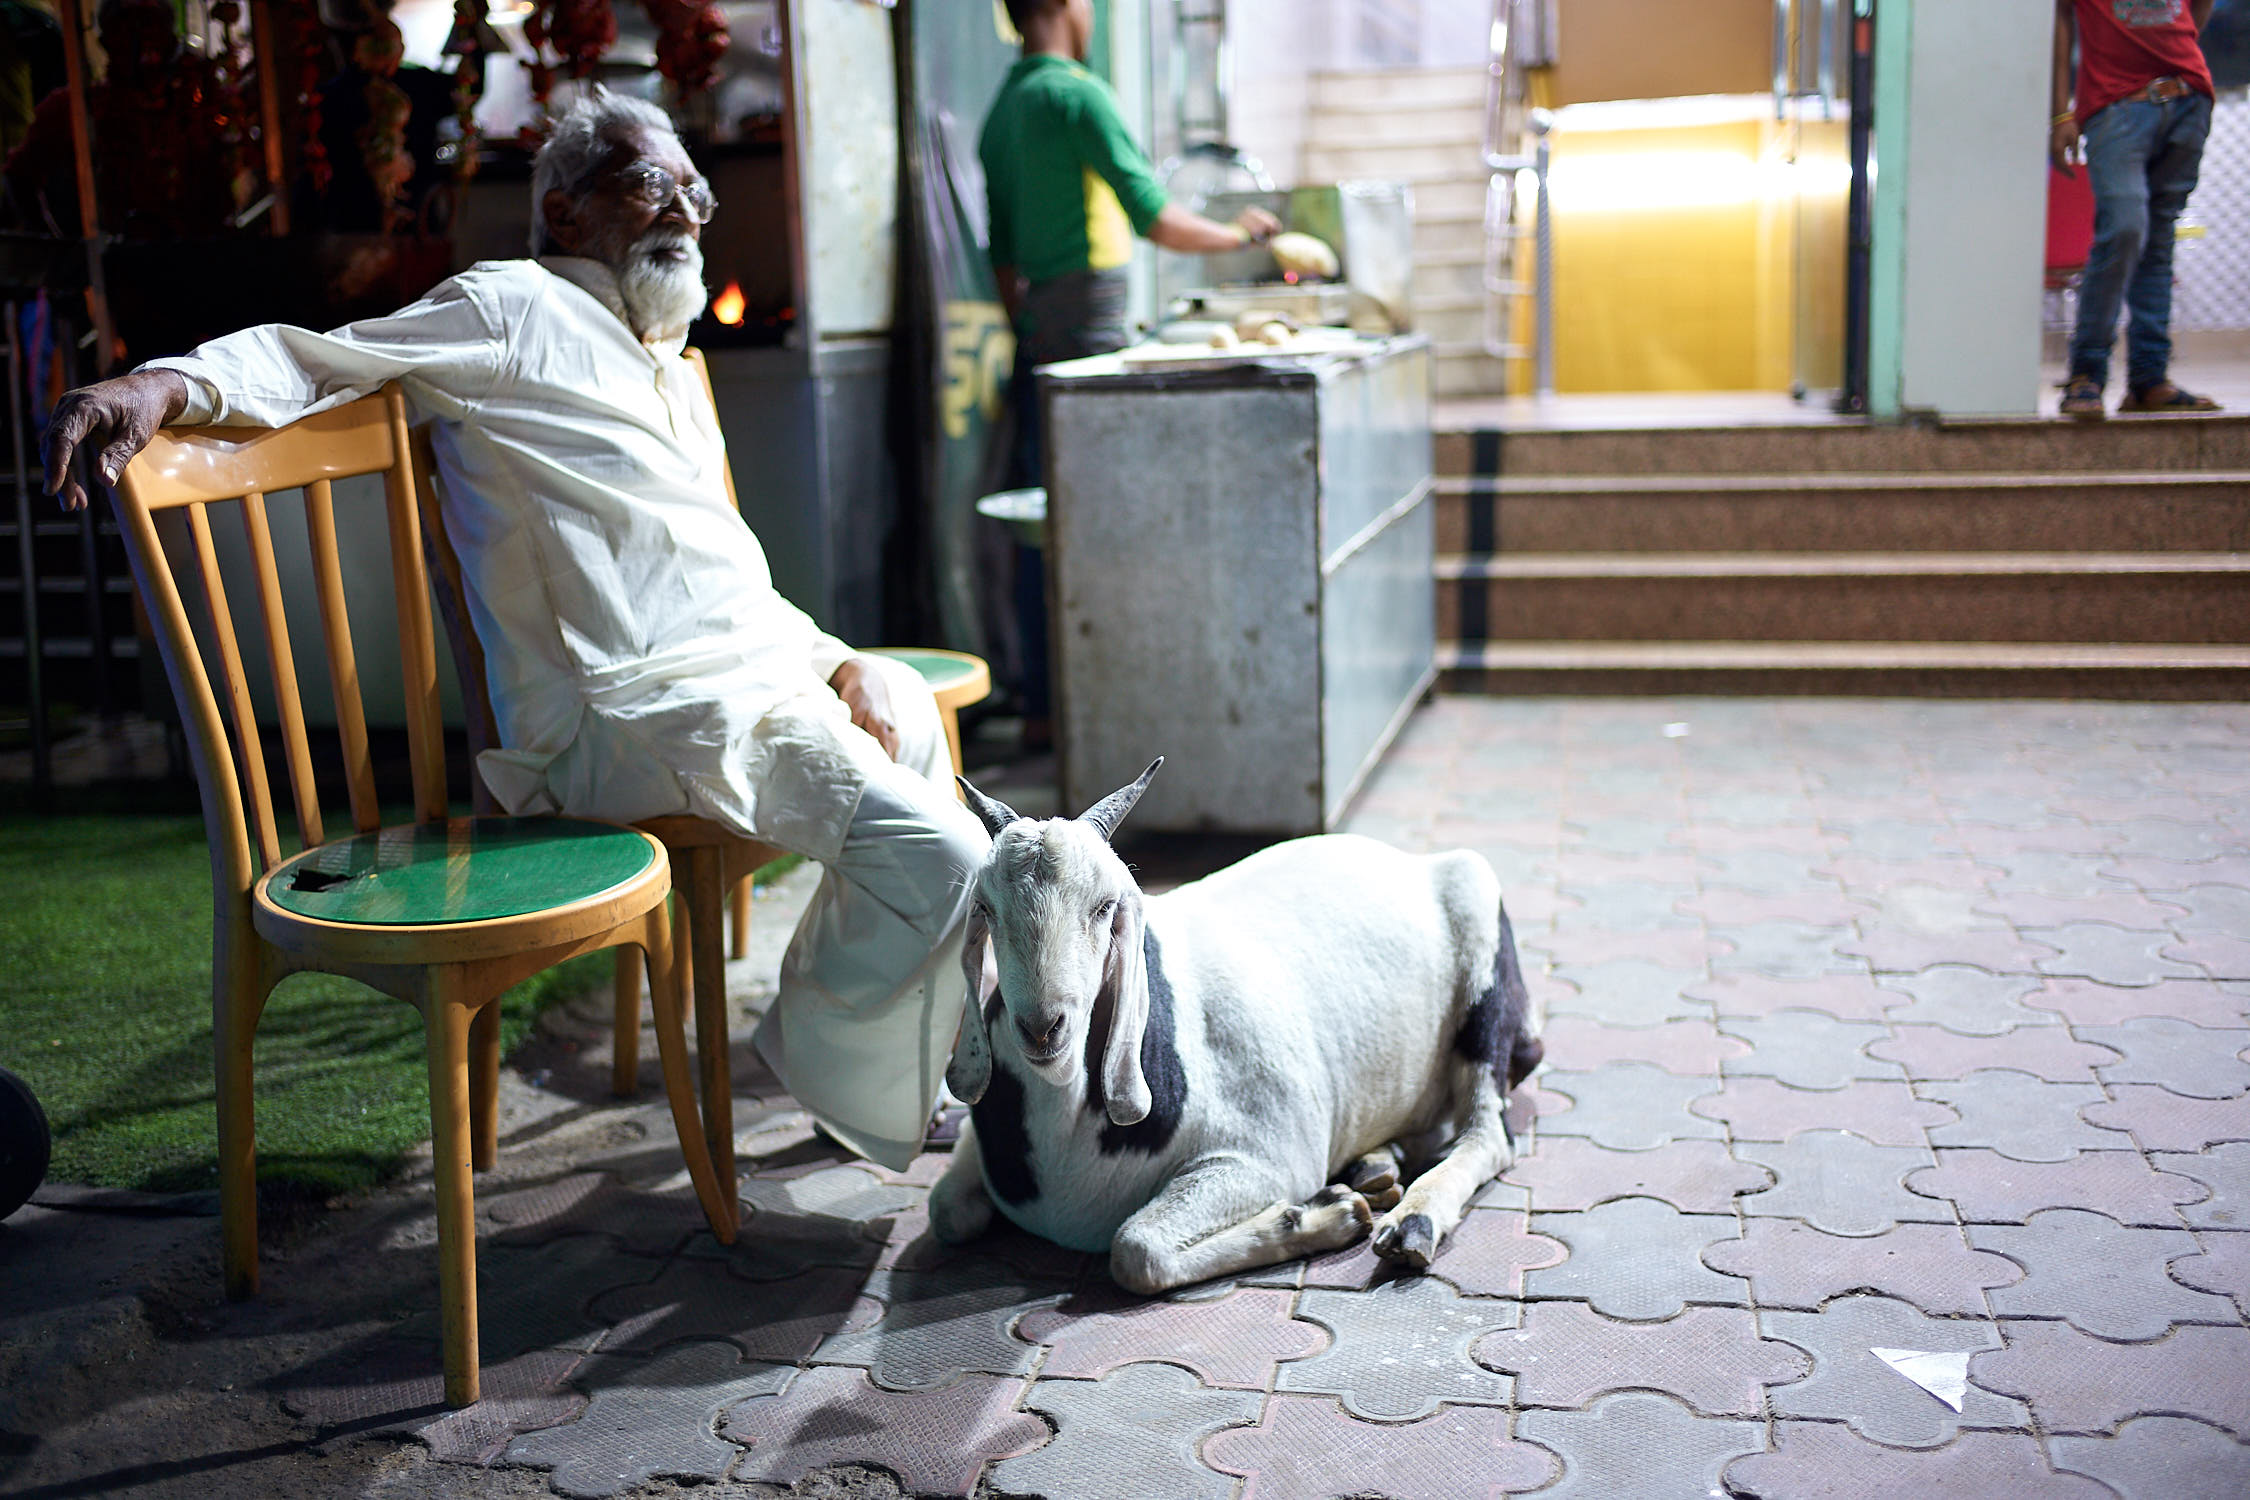 Goat on the streets of Jaipur, India